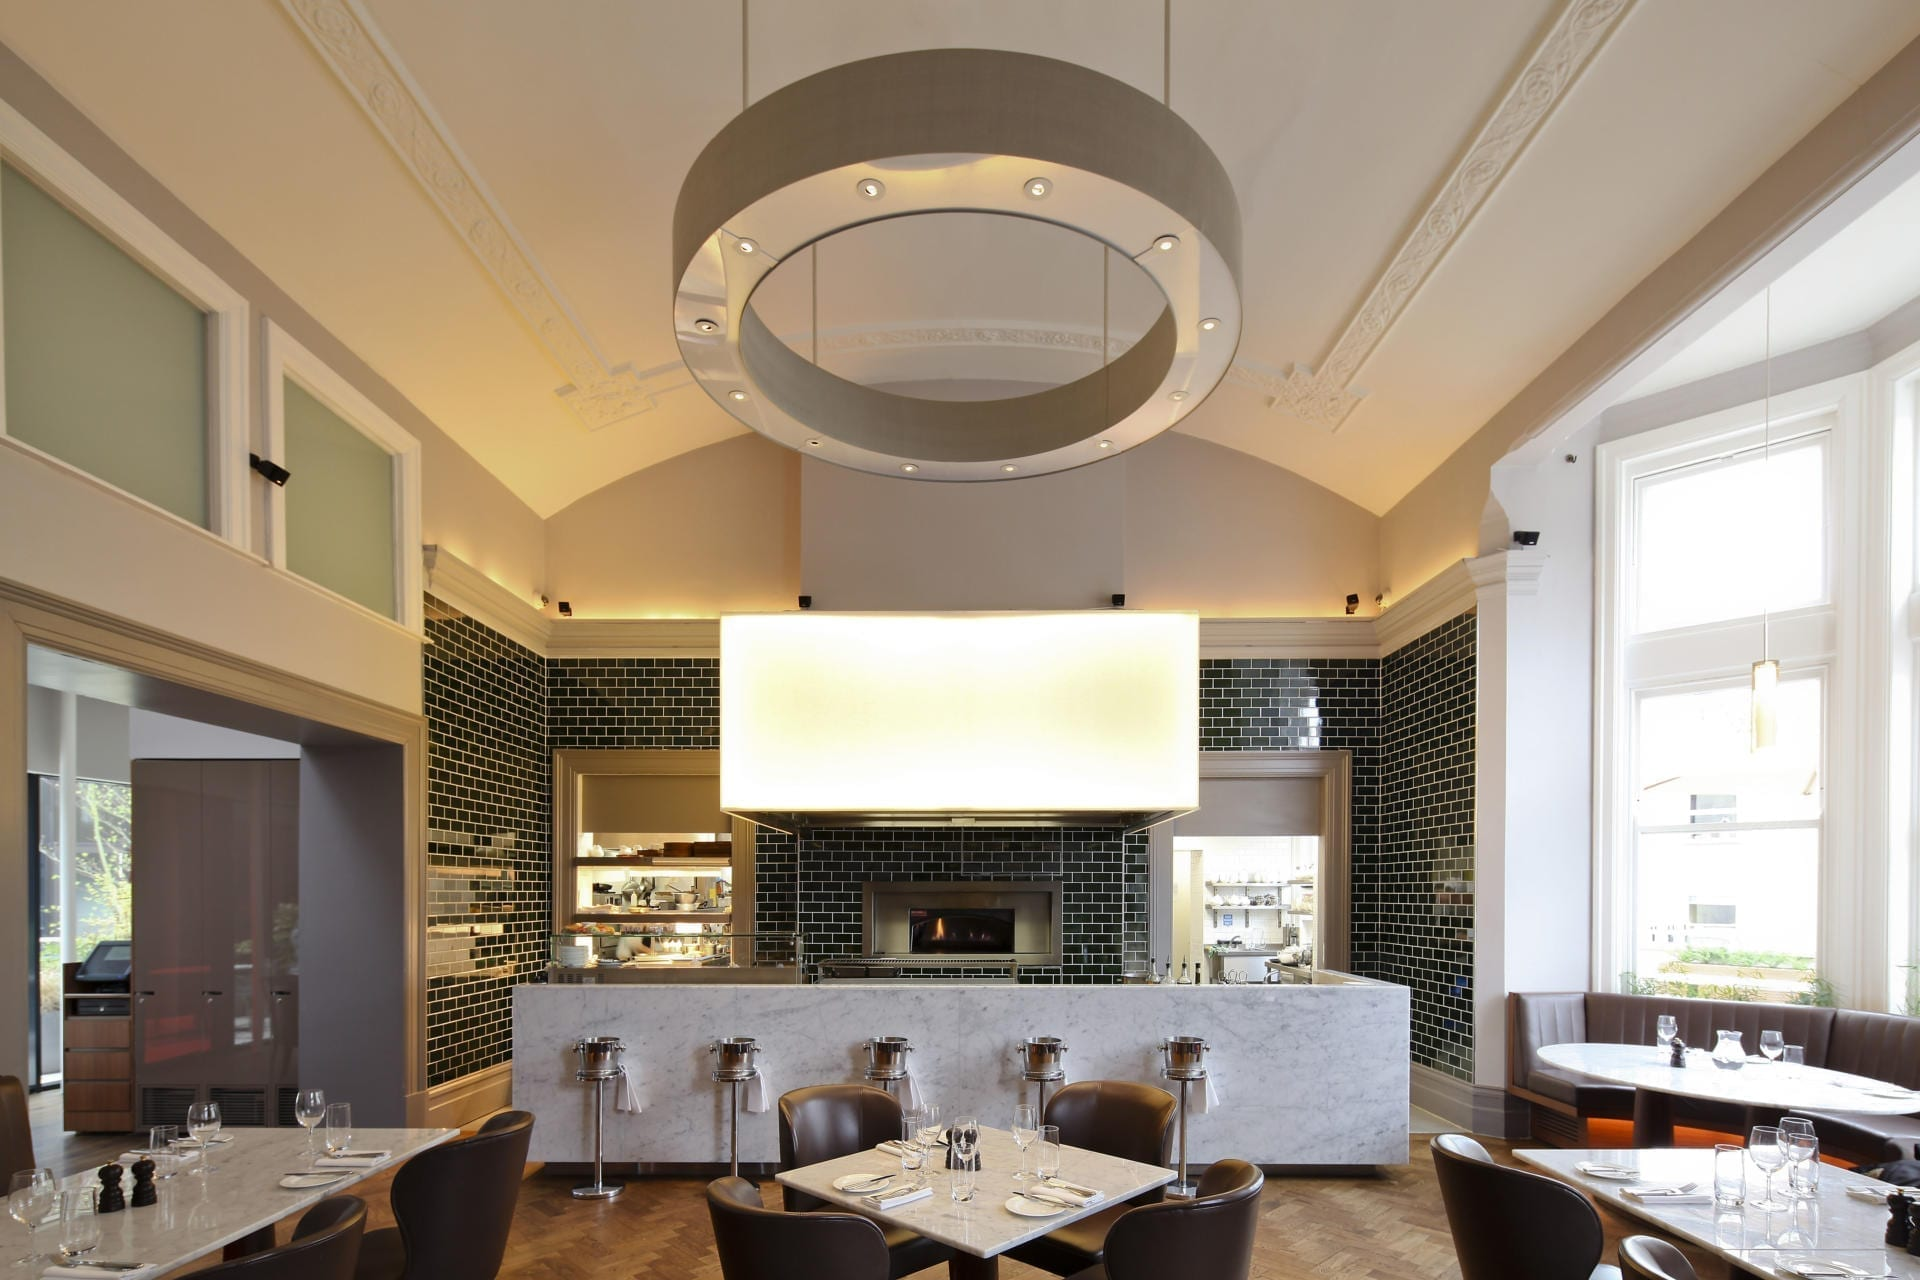 Montpellier-Chapter-Cheltenham-Restaurant-Kitchen-Front-of-house-Servery-Food-Display-Pizza-spacecatering_2